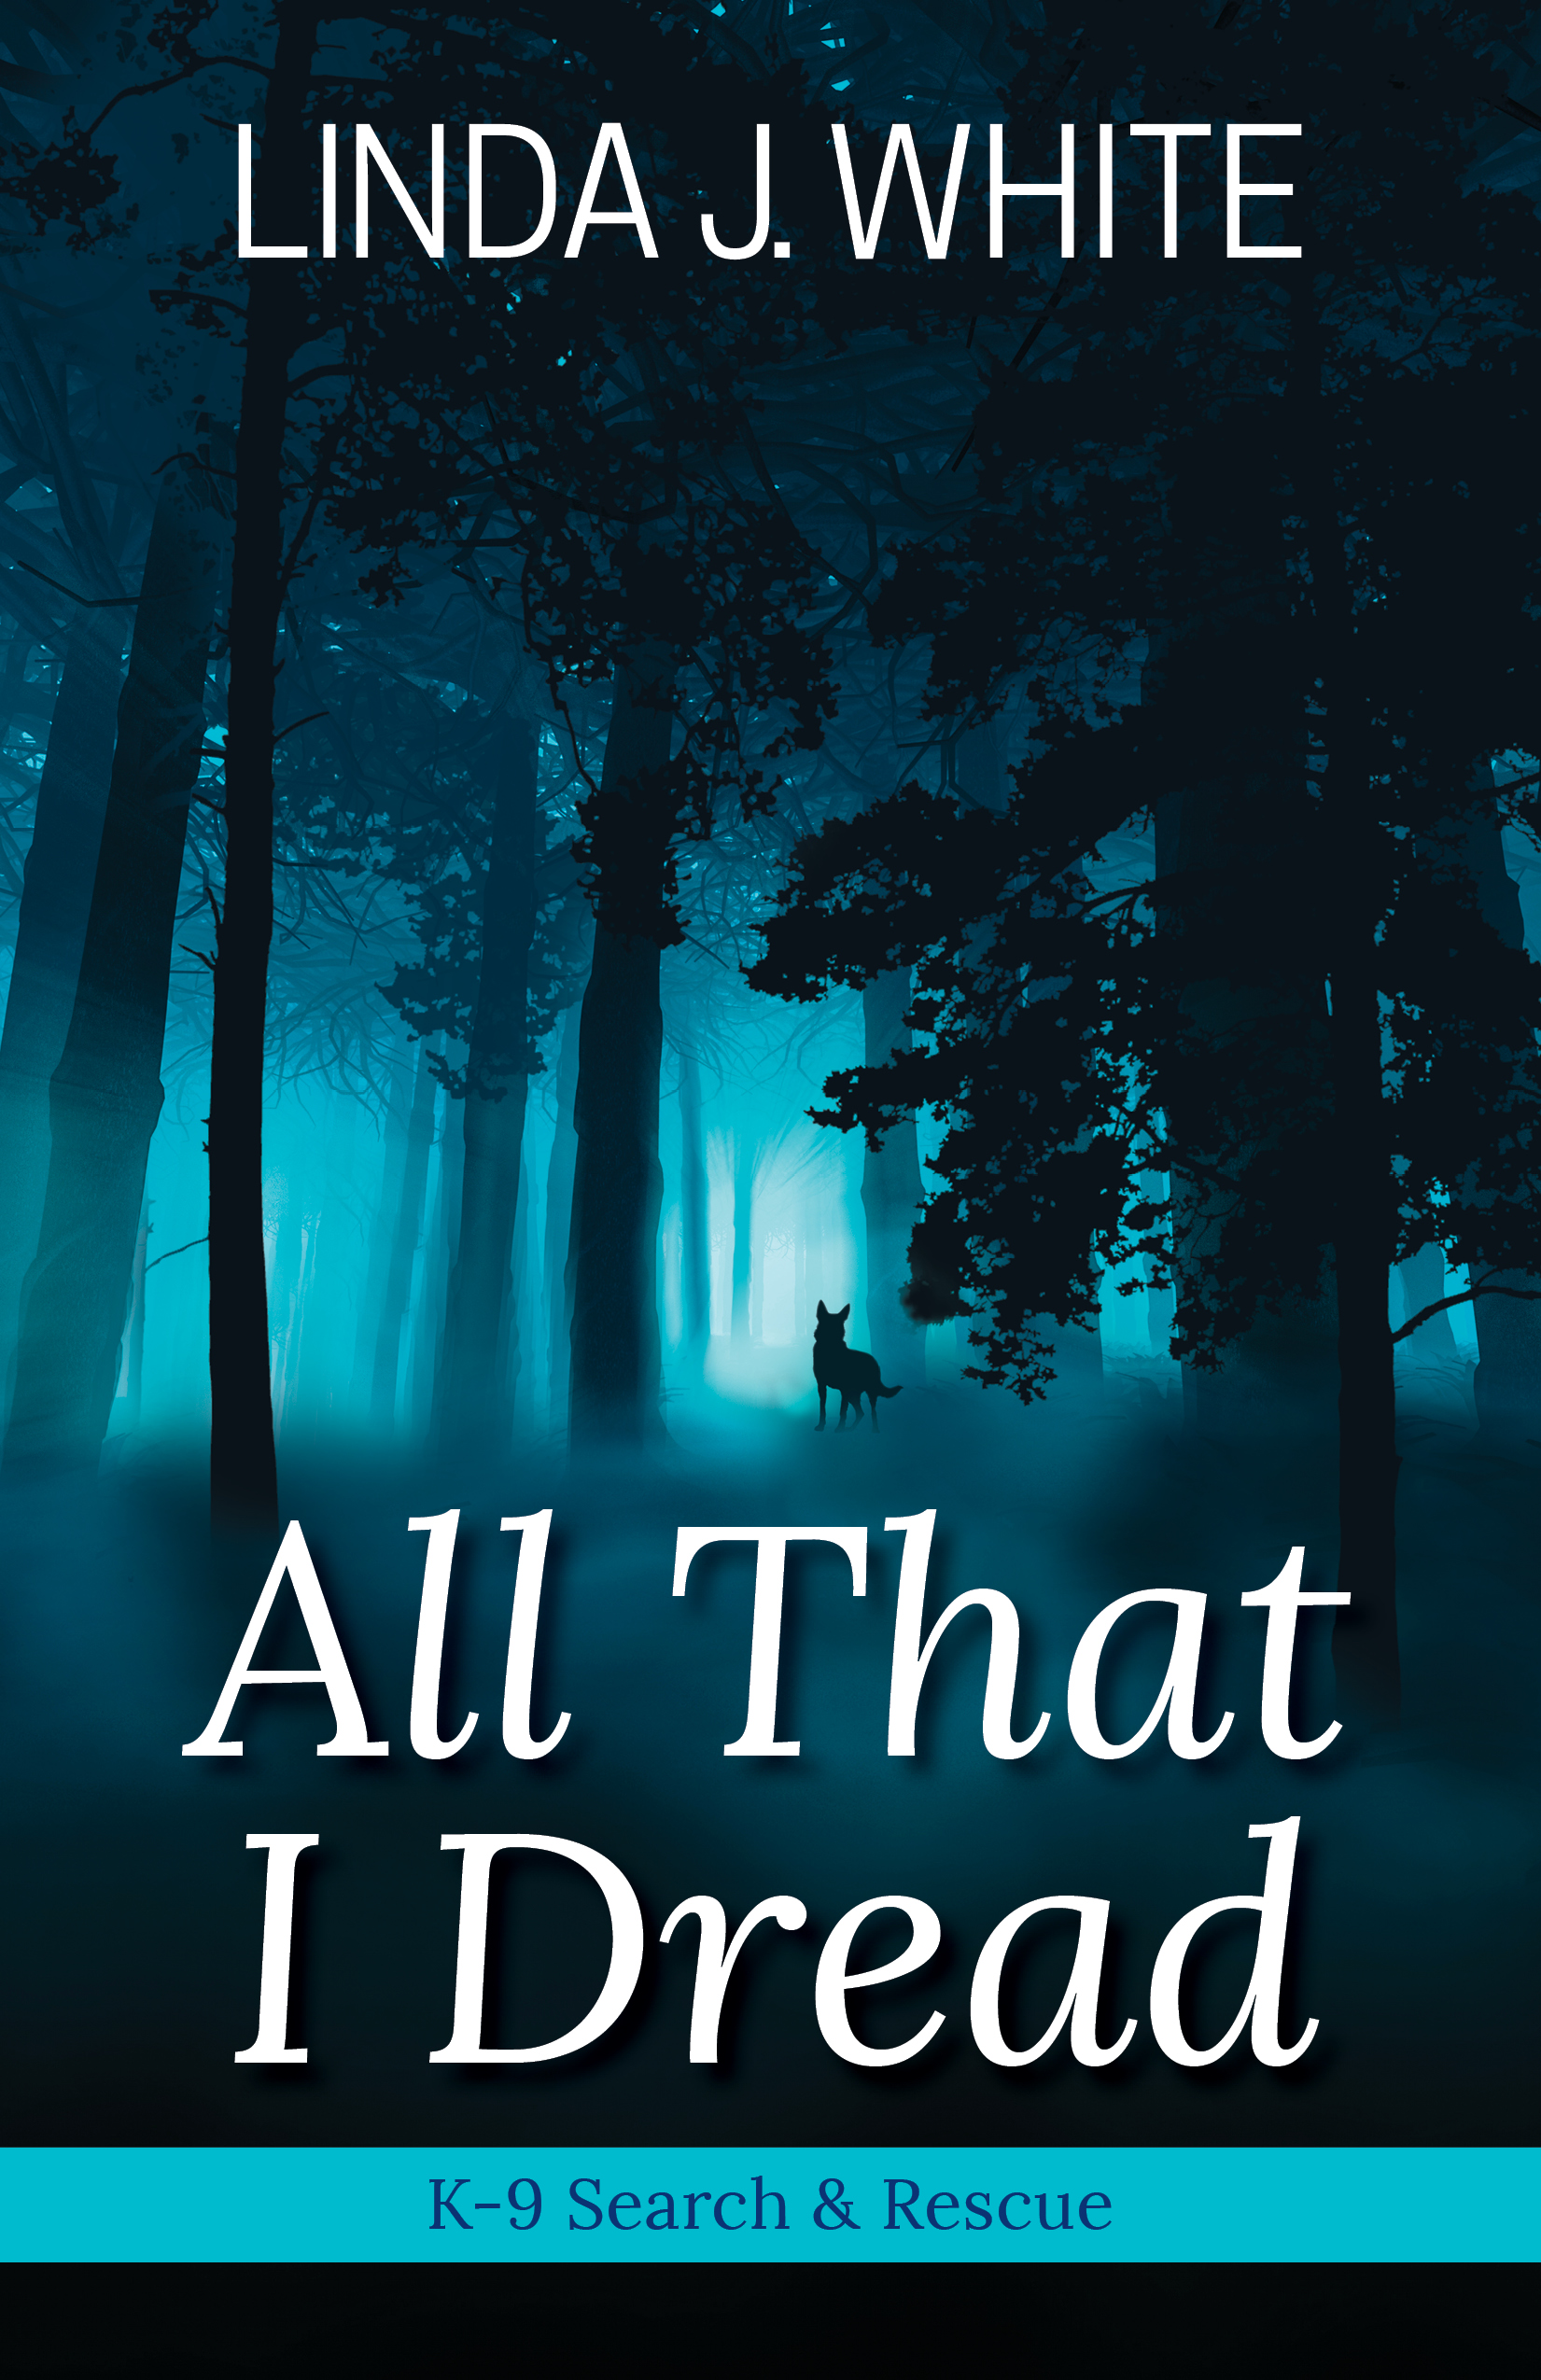 All That I Dread - After a tragic loss, Jessica Chamberlain changes jobs, moves, and adopts a rowdy German shepherd. The two begin training with a Virginia search-and-rescue group. The group's training director, Nathan Tanner, is a former military working dog handler with scars of his own and he quickly picks up on Jess's ongoing anxiety.After the unexpected discovery of a body in the woods, Jess and her dog and Nate are drawn into the FBI's search for an abductor targeting women. Tormented by her past and terrified of the future, Jess still forges ahead. Can the secrets of her late father give her the courage she needs to continue?